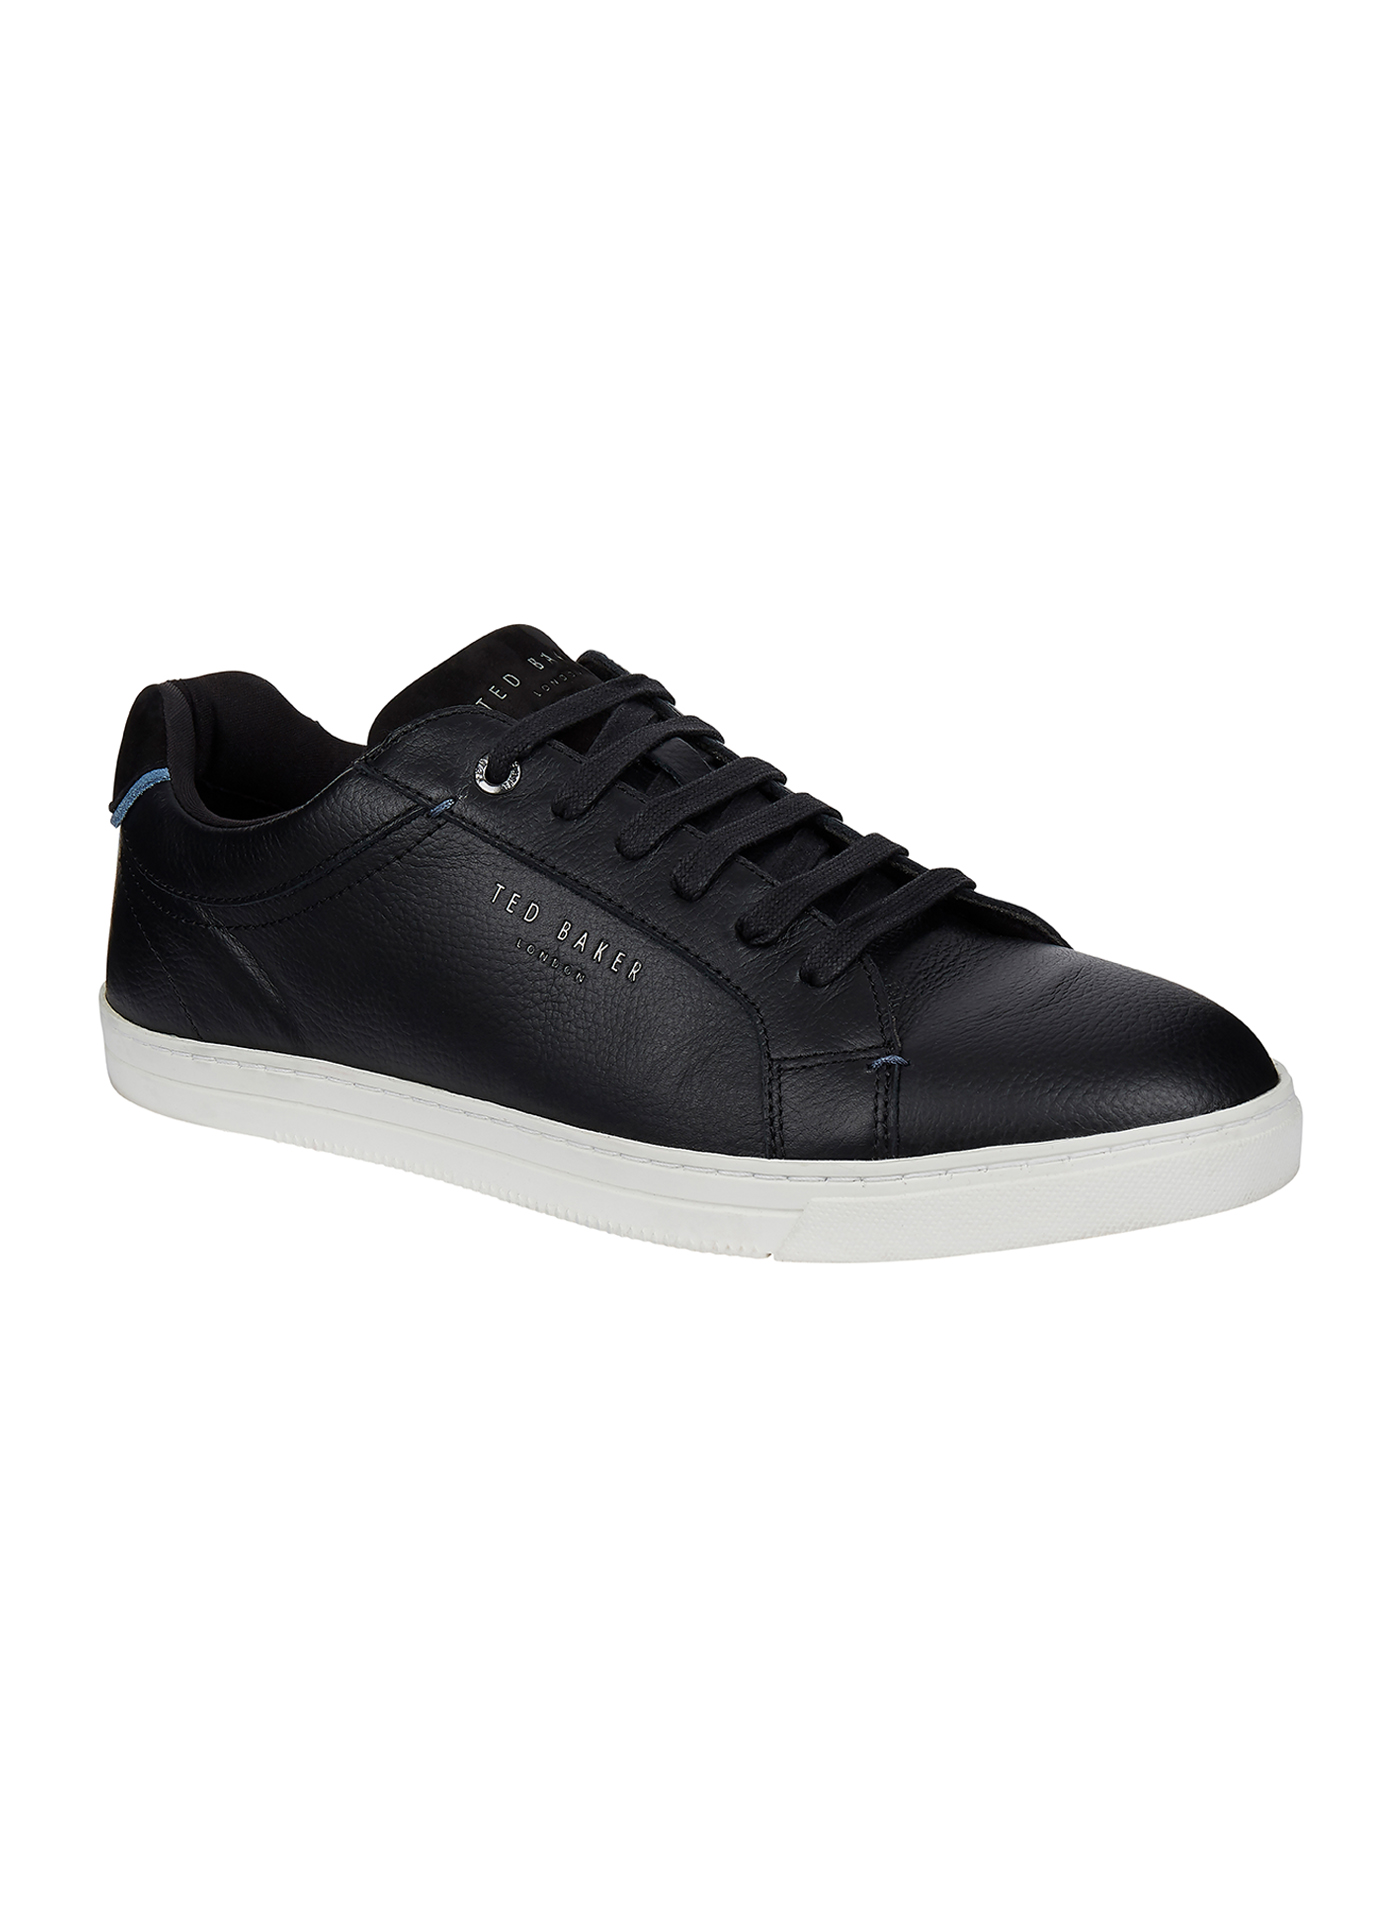 Black Ted Baker casual trainers with white sole